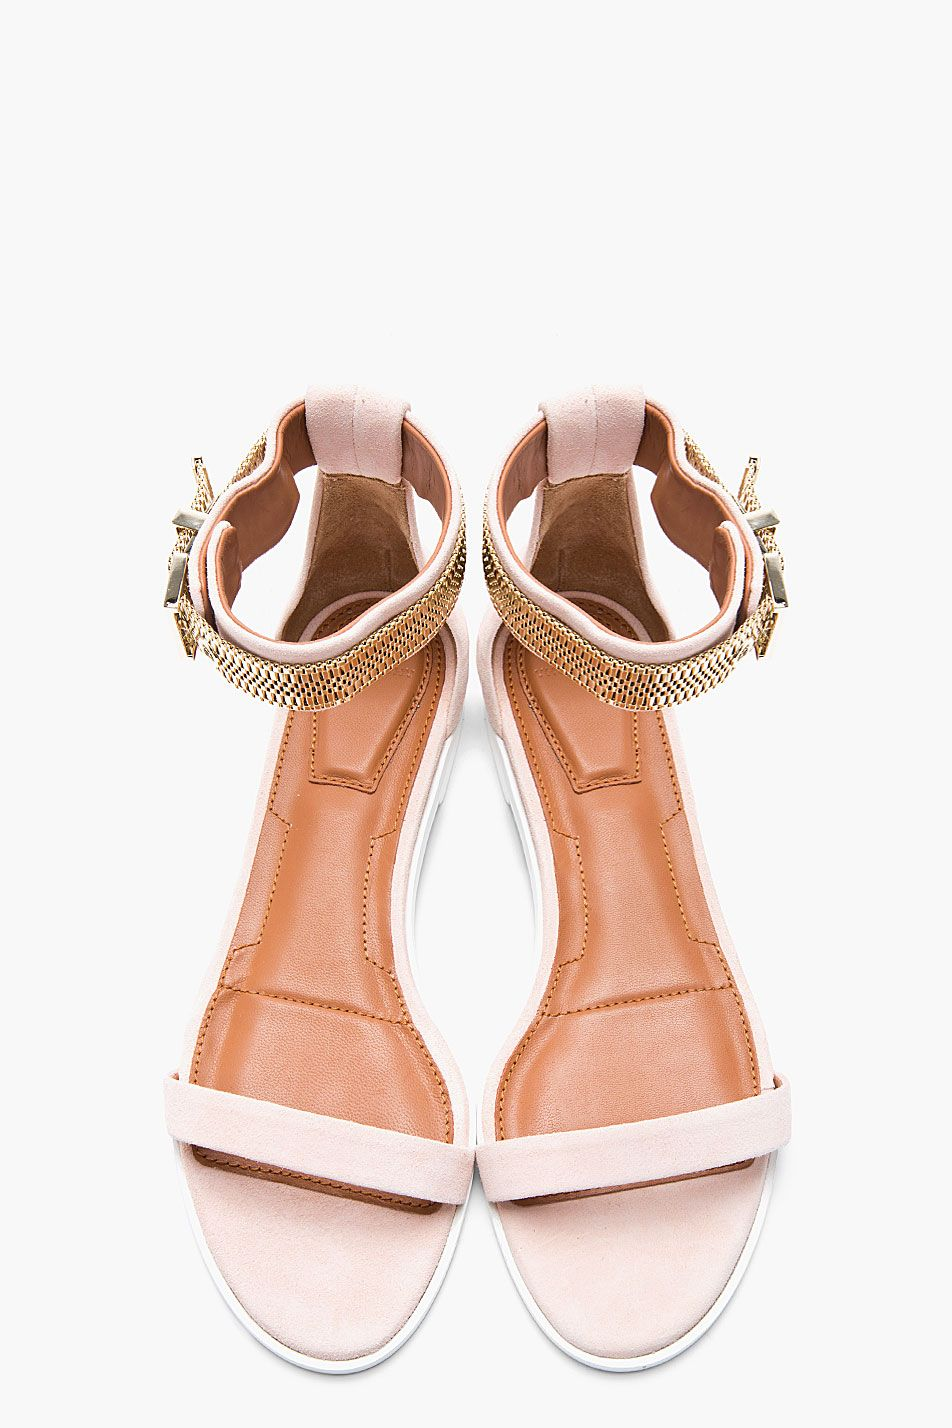 d9ed7a764613 Givenchy Blush Suede Chain-embellished Sandals for women